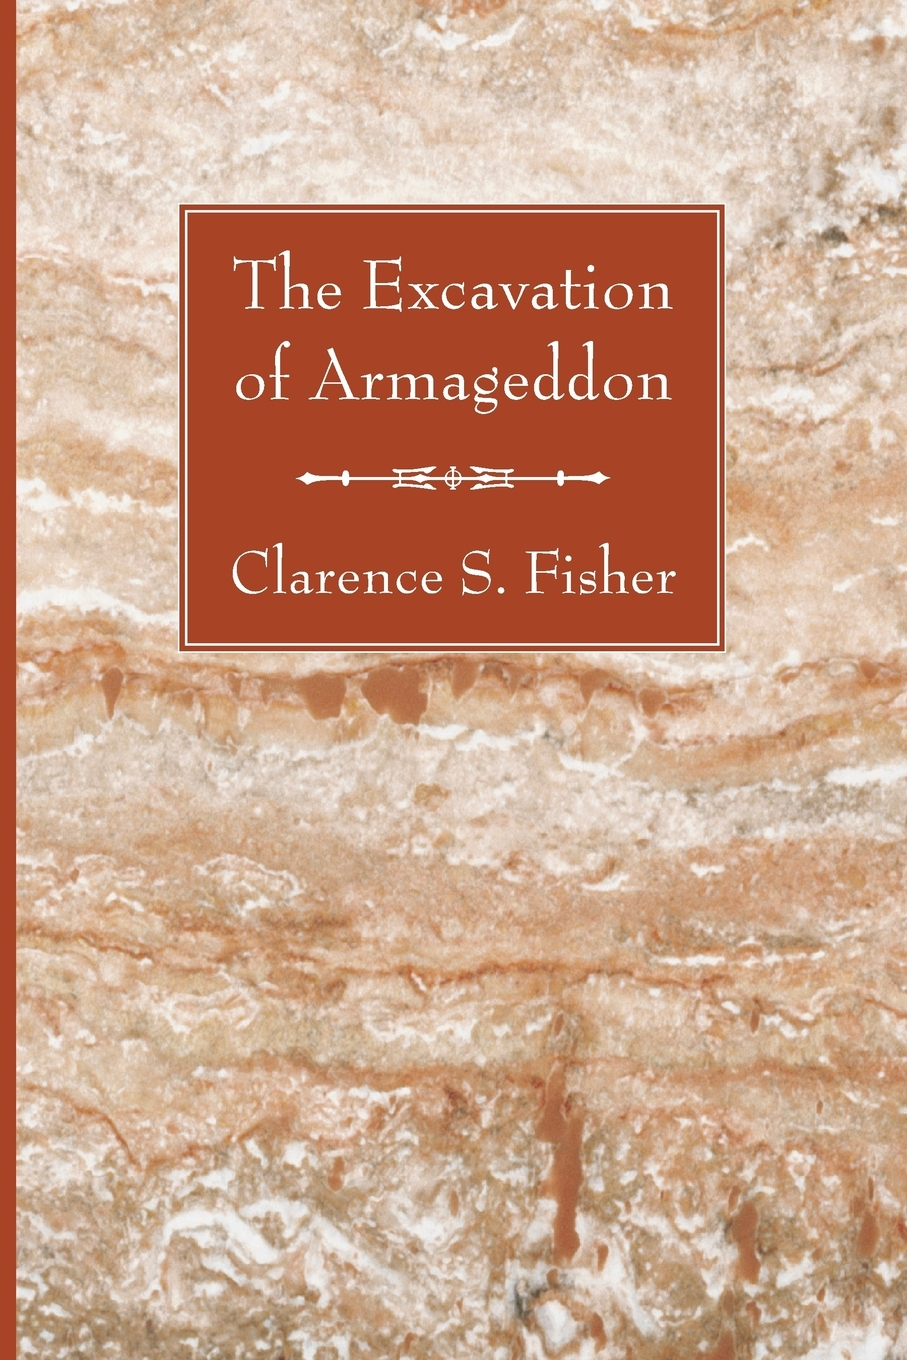 Armageddon and the Book of Revelation